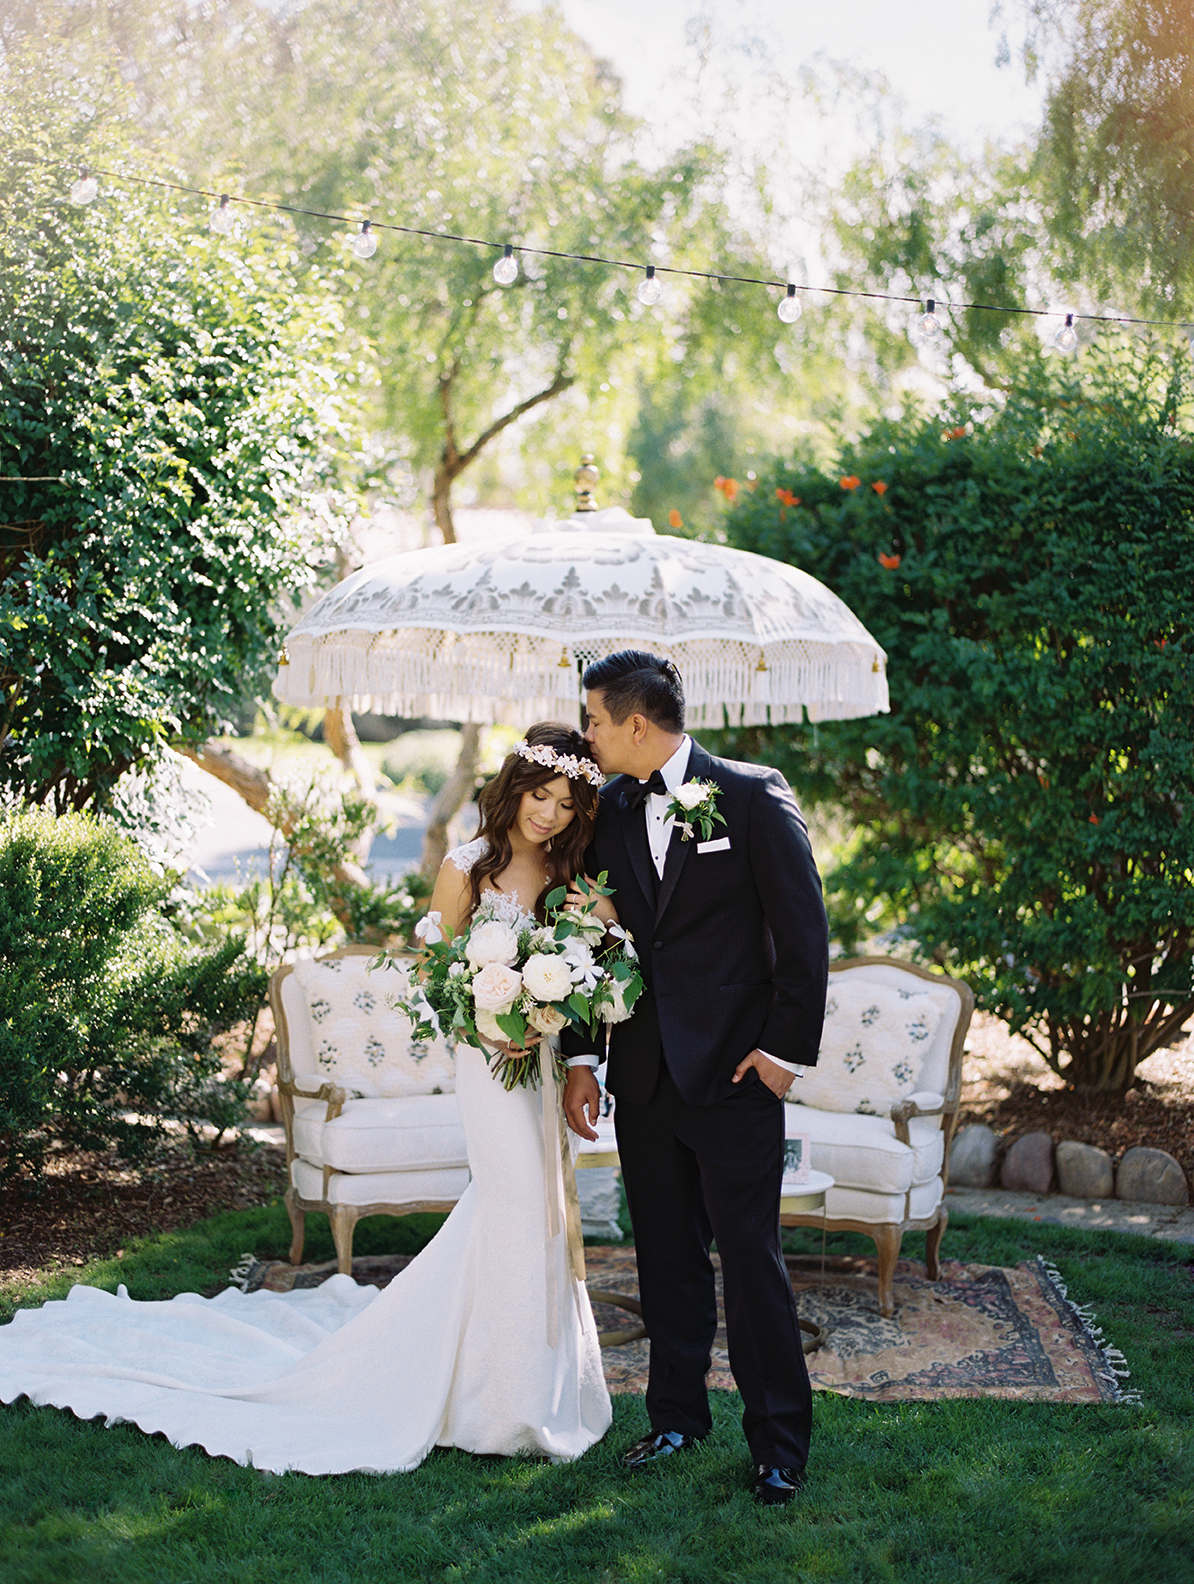 252-phillip-uyen-la-jolla-wedding-fine-art-film-brumley-wells-photography.jpg